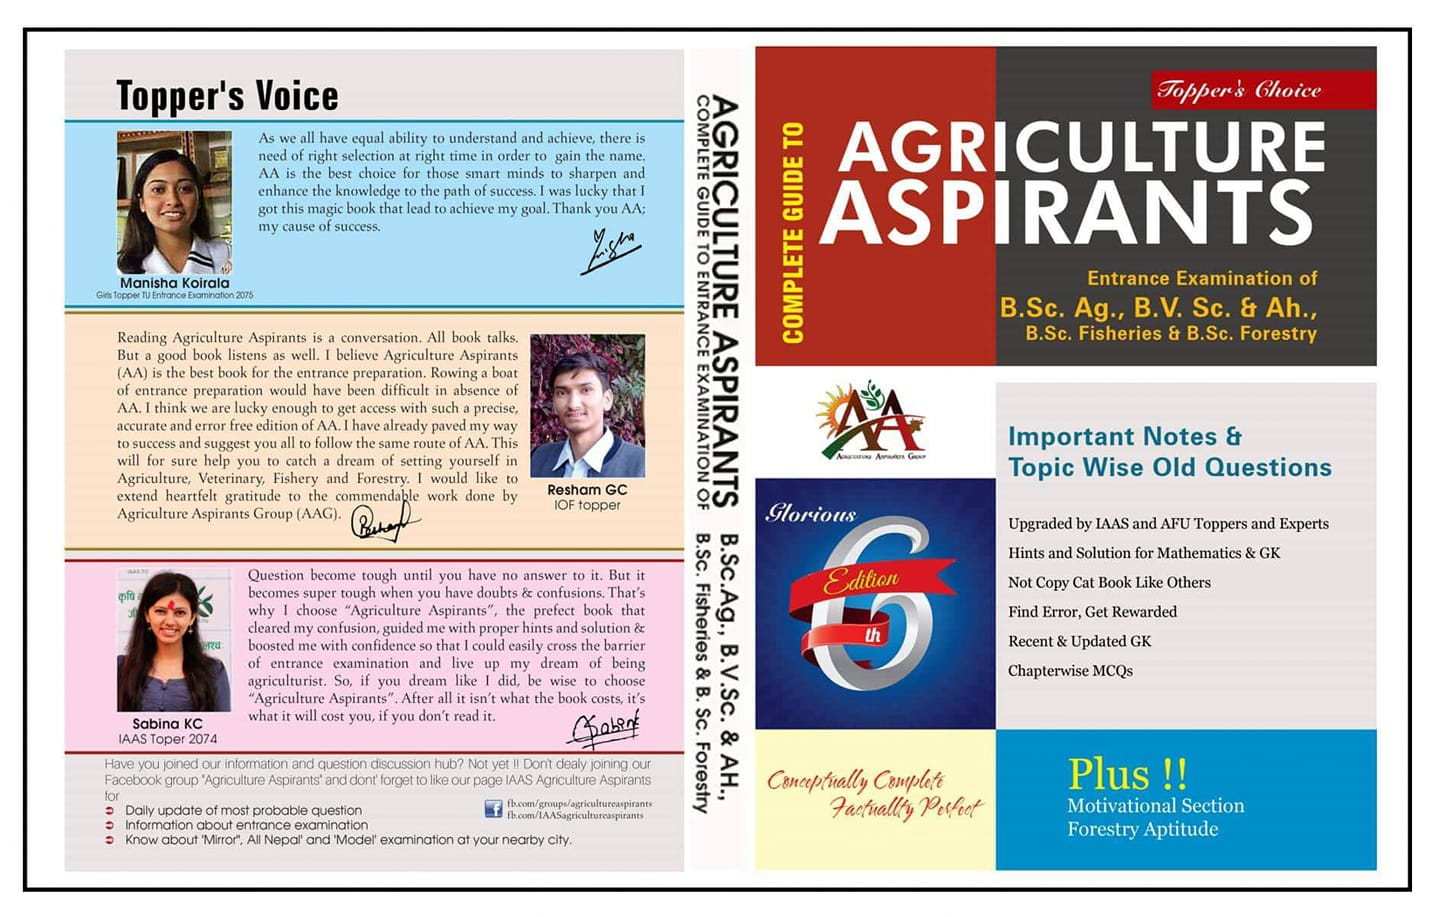 Agriculture Aspirants Book : Complete Solution For B.Sc. Ag and AH